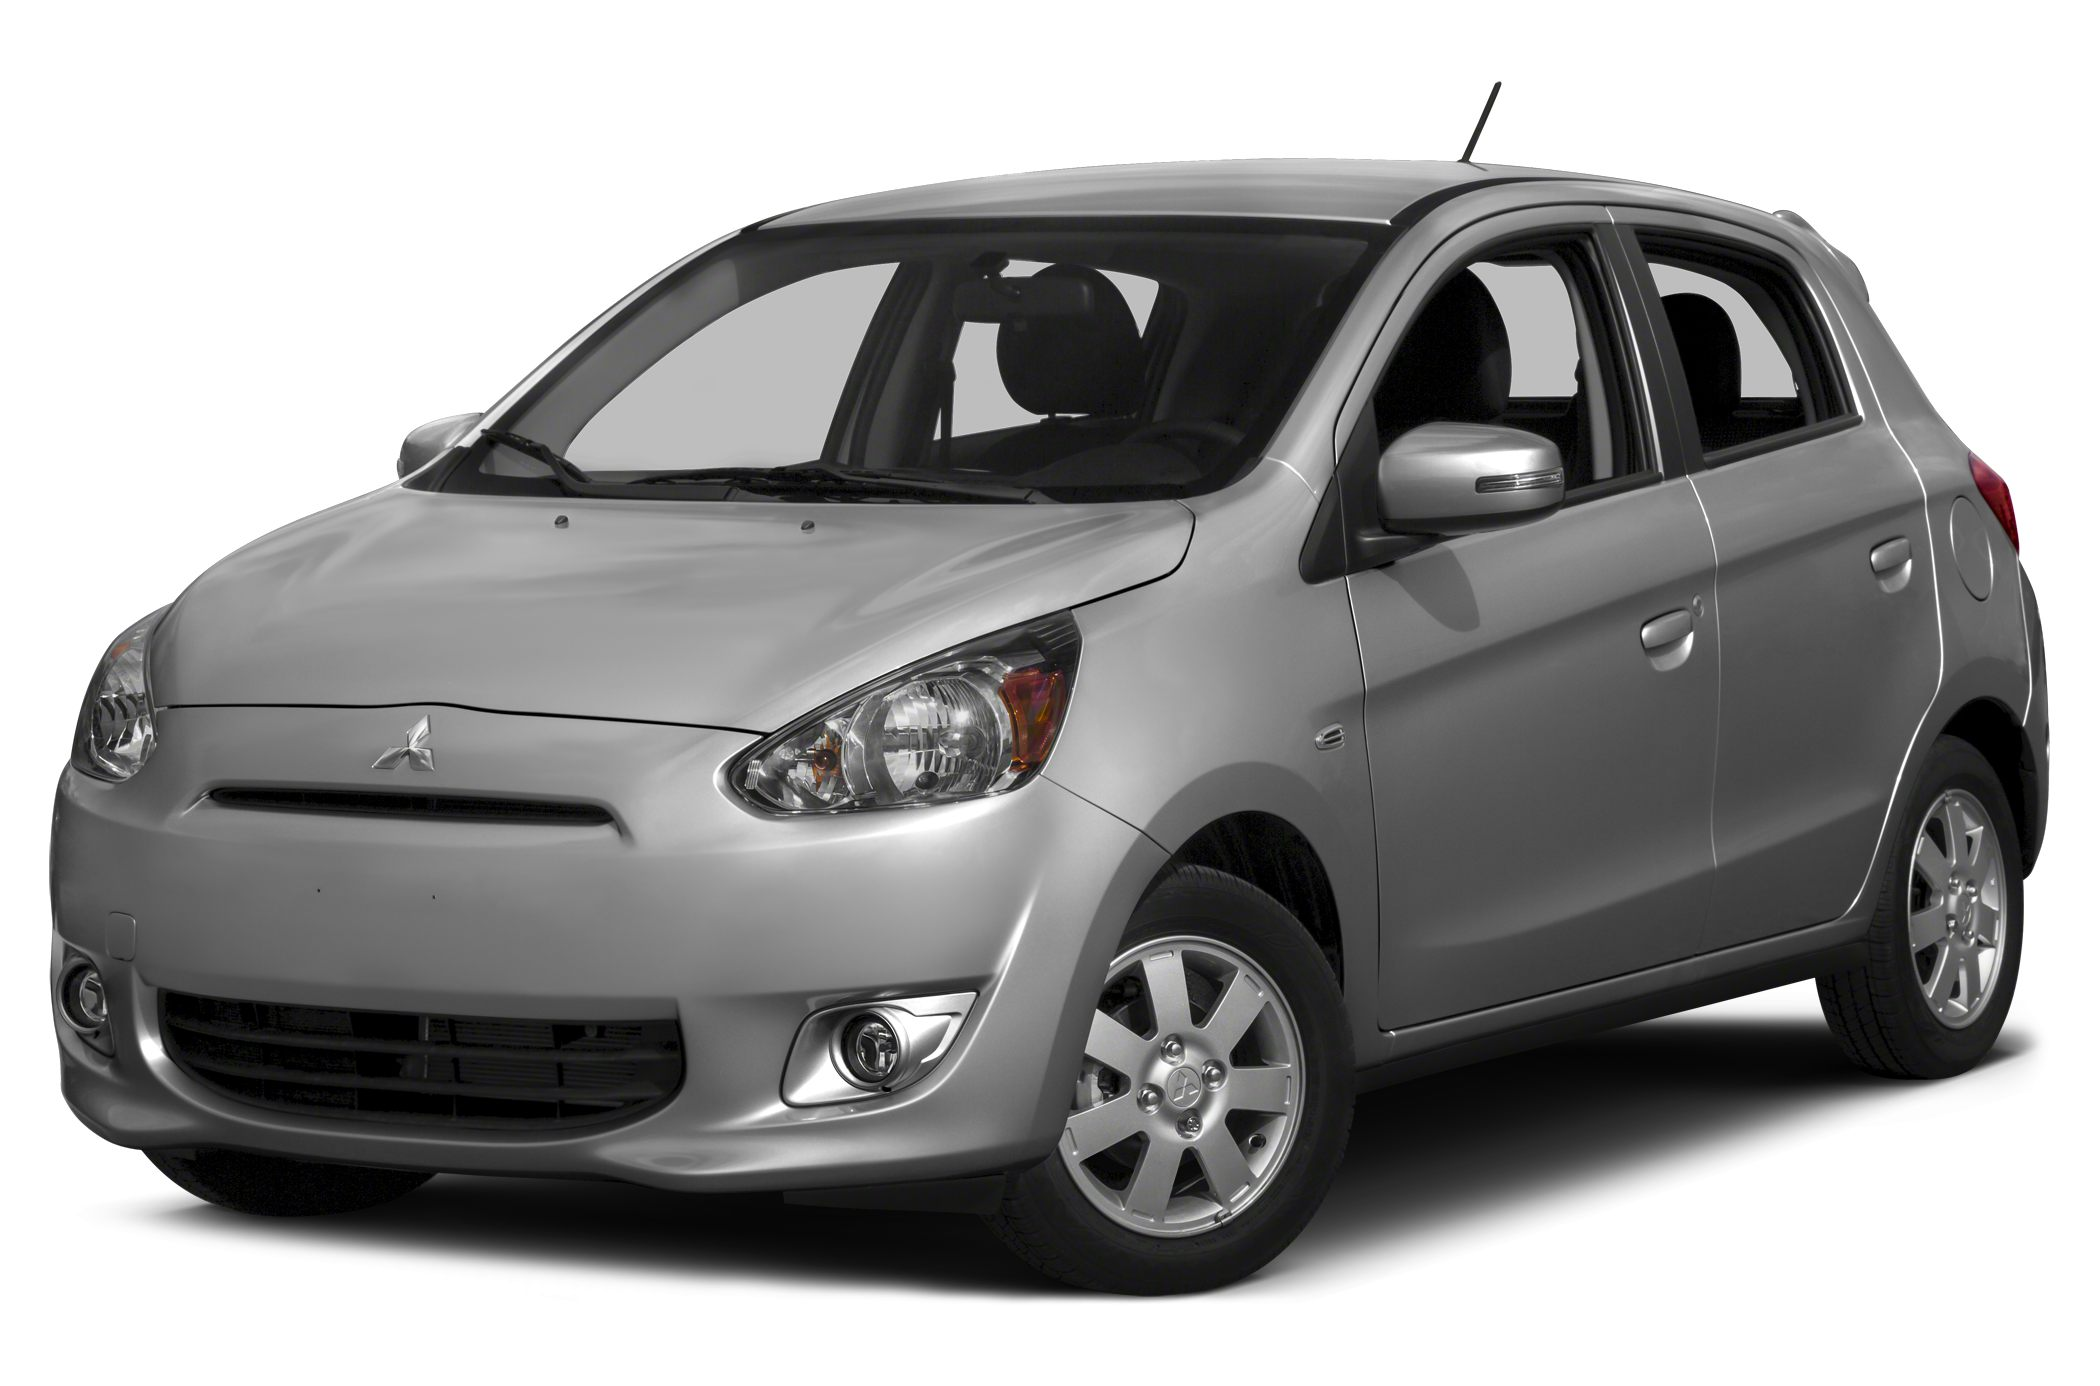 2015 Mitsubishi Mirage ES Hatchback for sale in Middleburg Heights for $14,222 with 11 miles